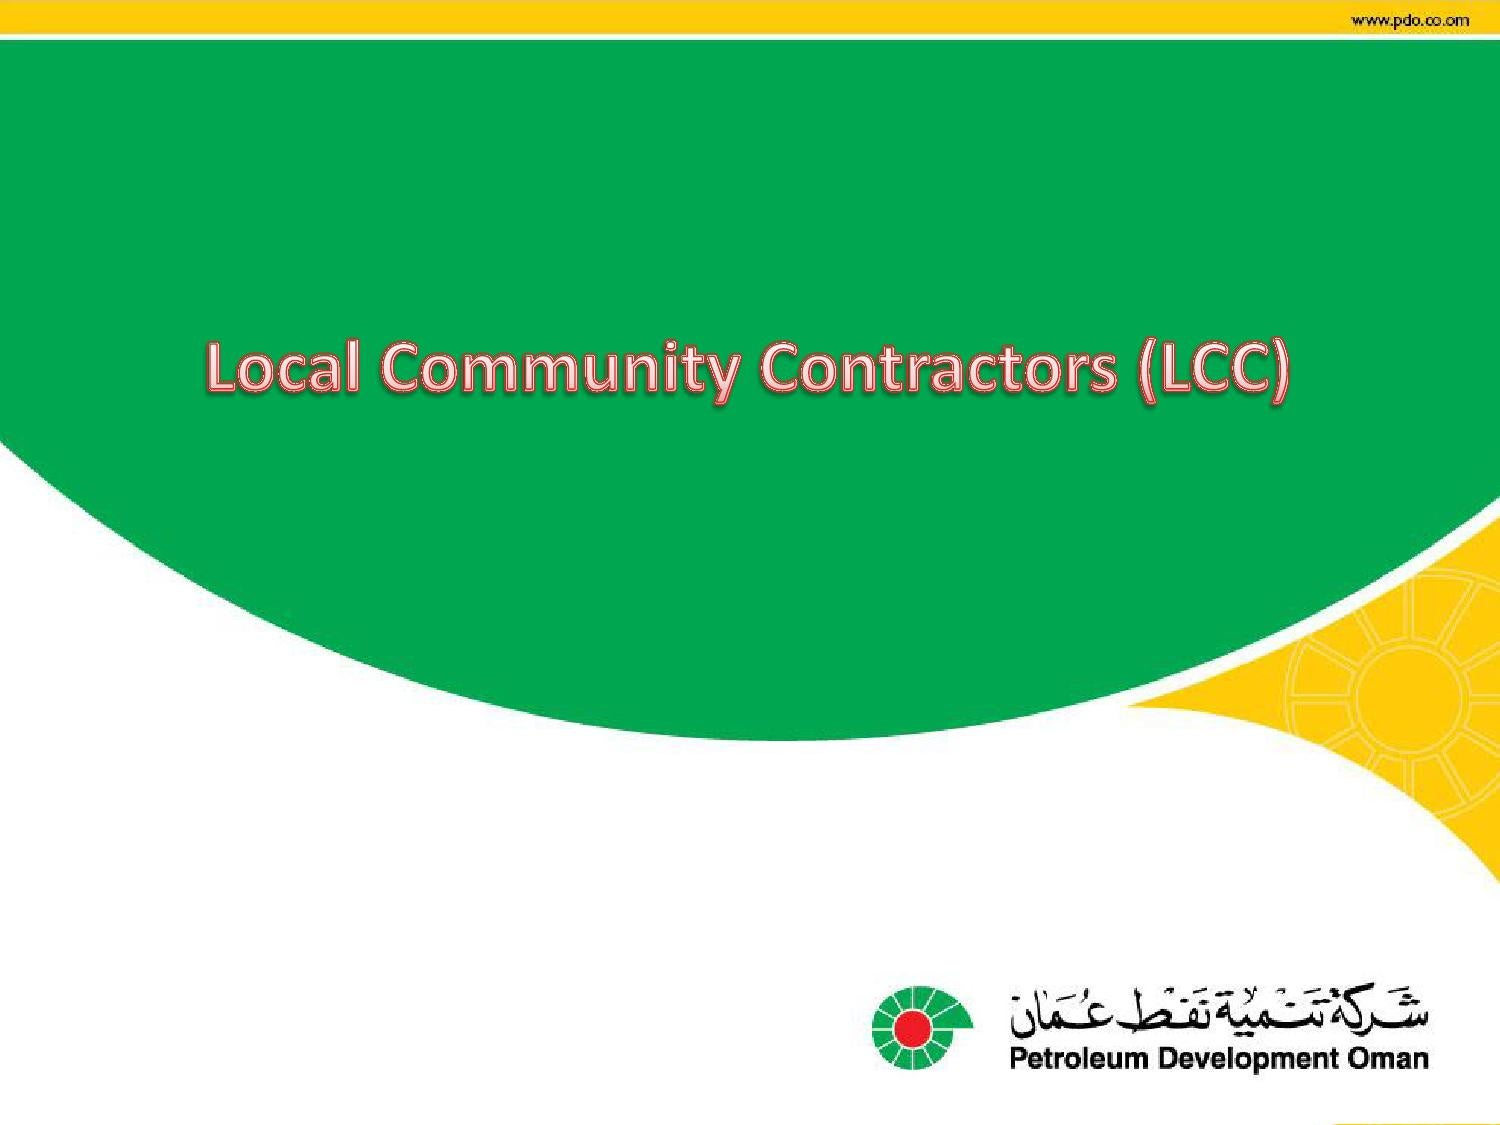 Local Community Contractor Program - PDO by Mohammed Al